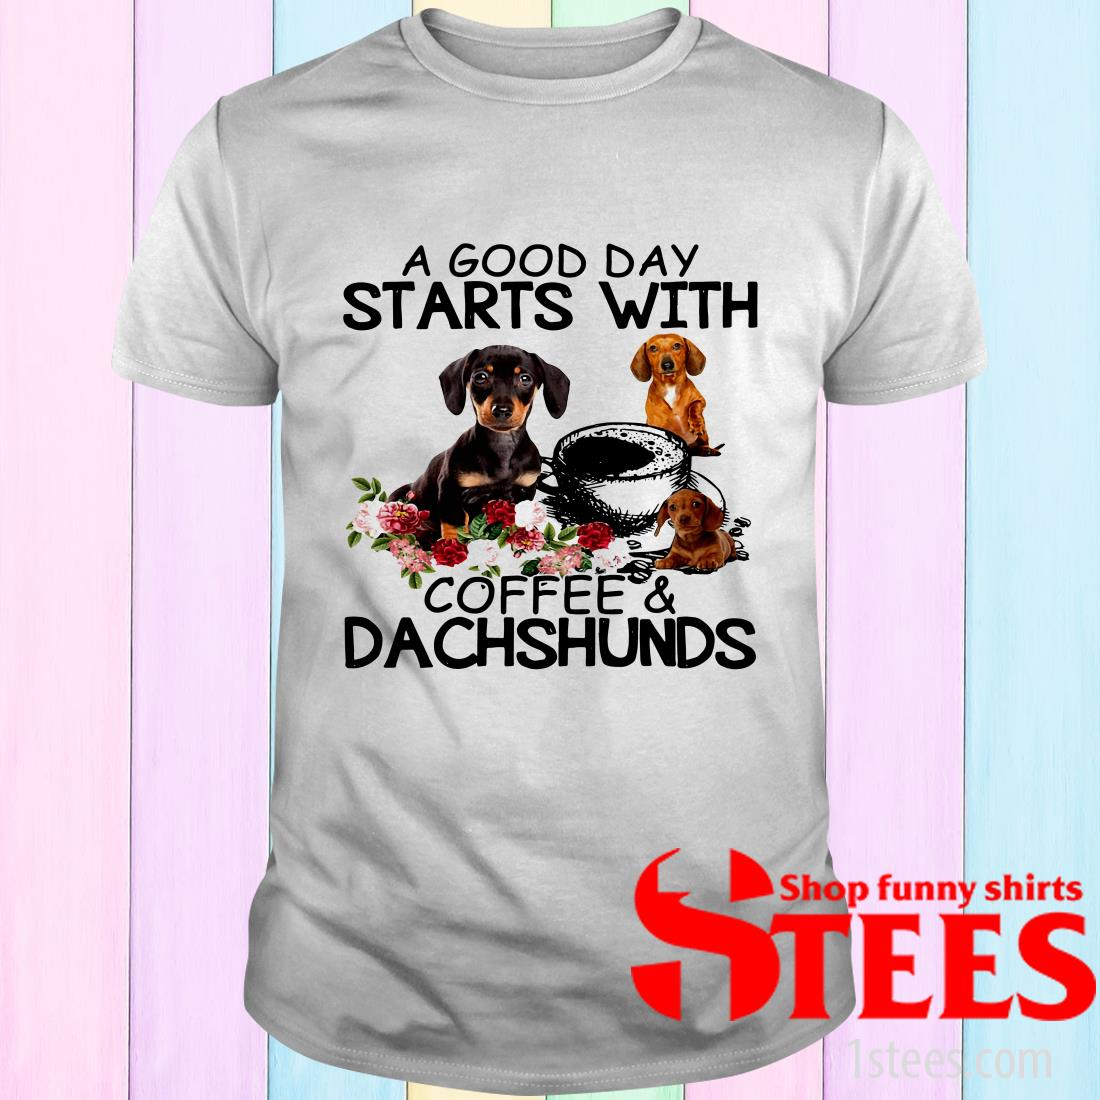 A Good Day Starts With Coffee And Dachshunds Dog T-Shirt